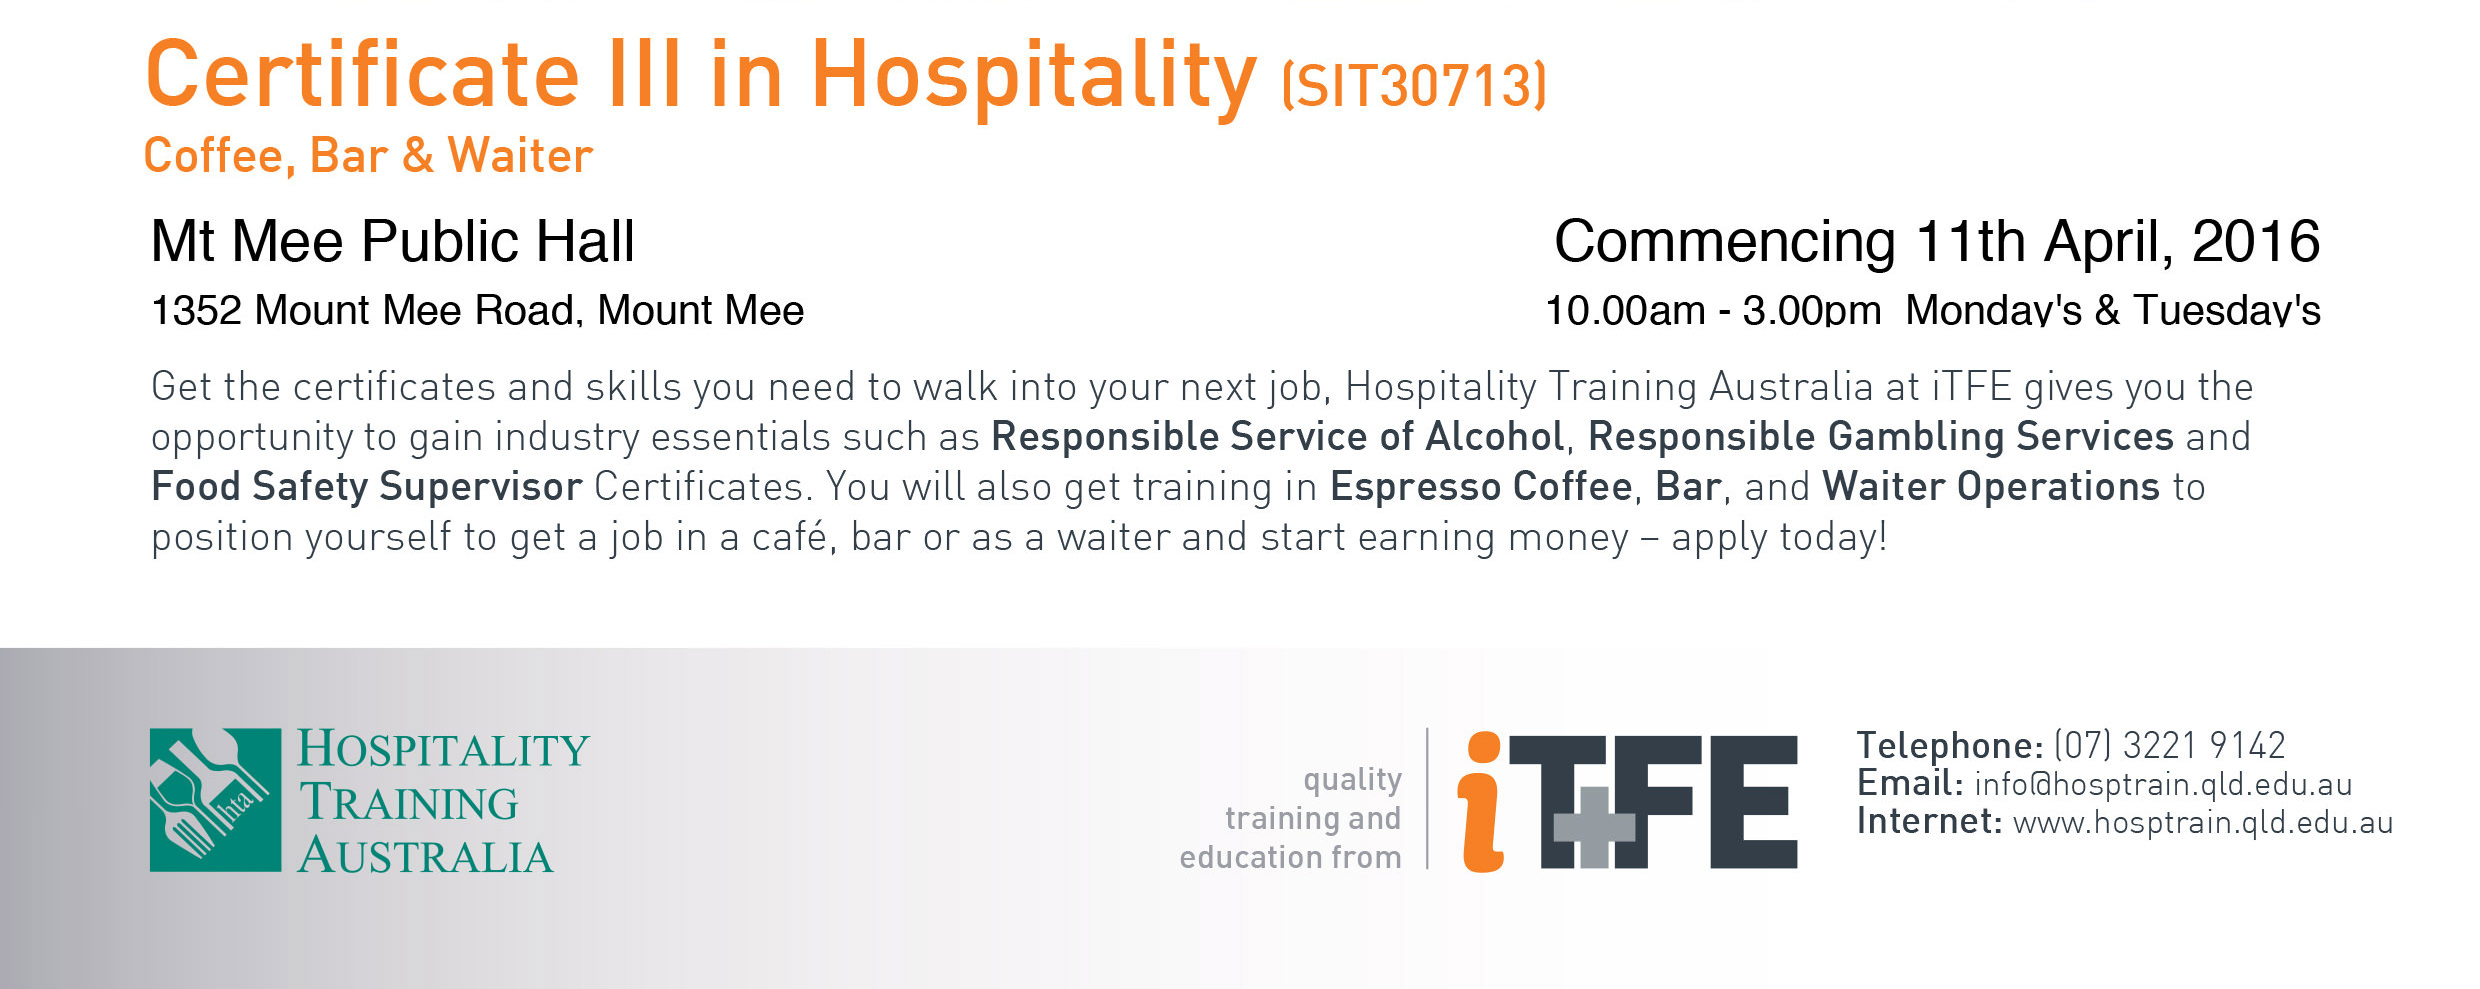 mountmee.com.au – Certificate 3 in Hospitality at Mount Mee Hall